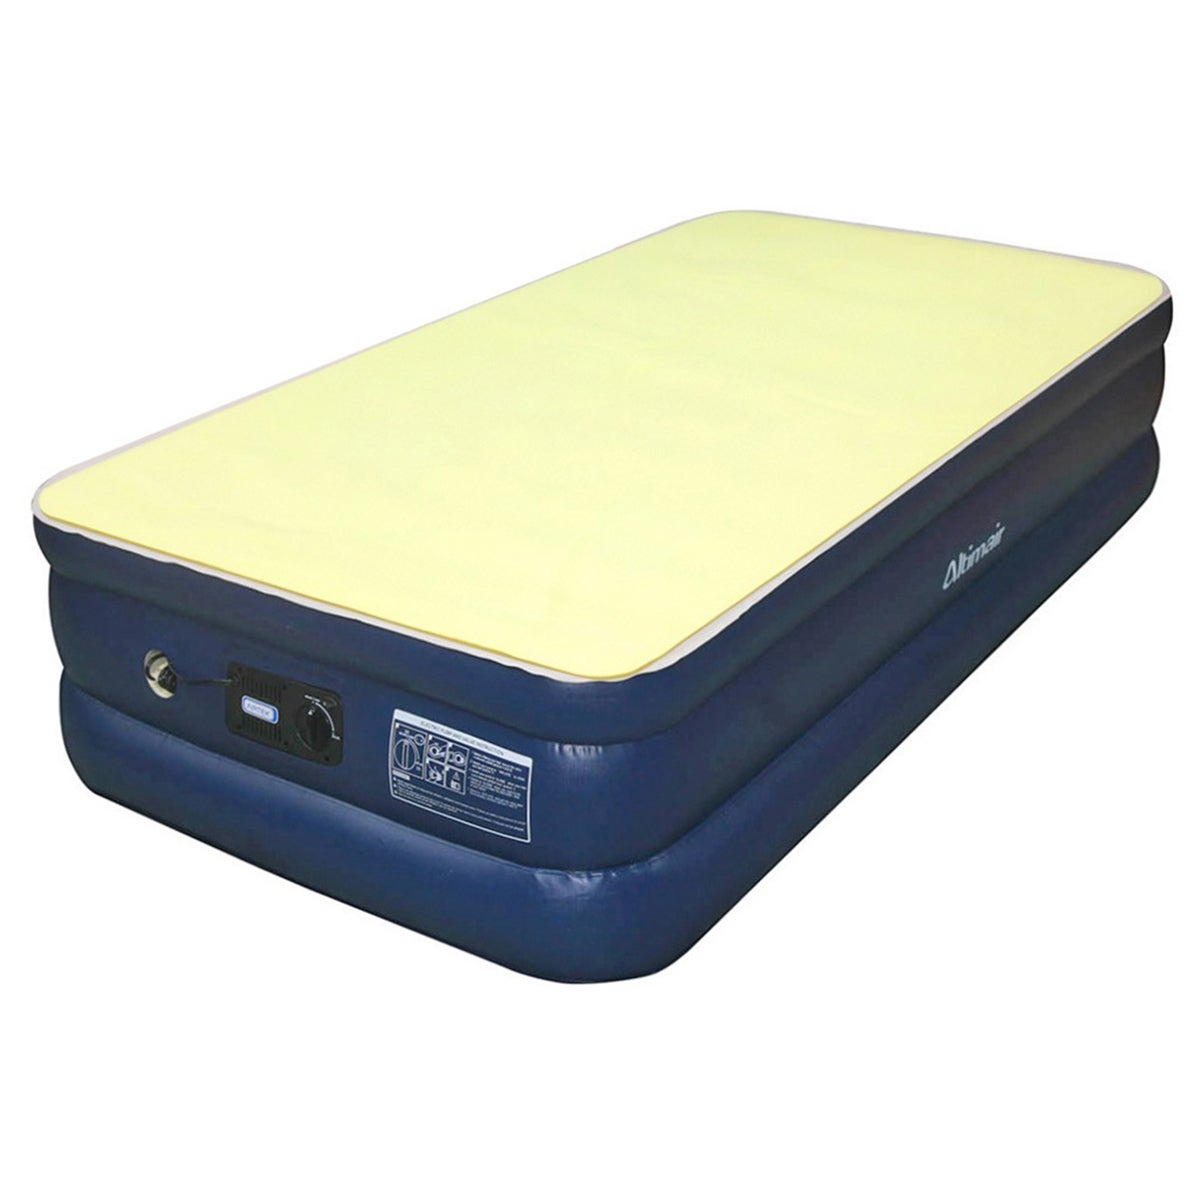 Airtek Twin Size Flocked Top Air Mattress With Memory Foam Mattress Topper Overstock Shopping